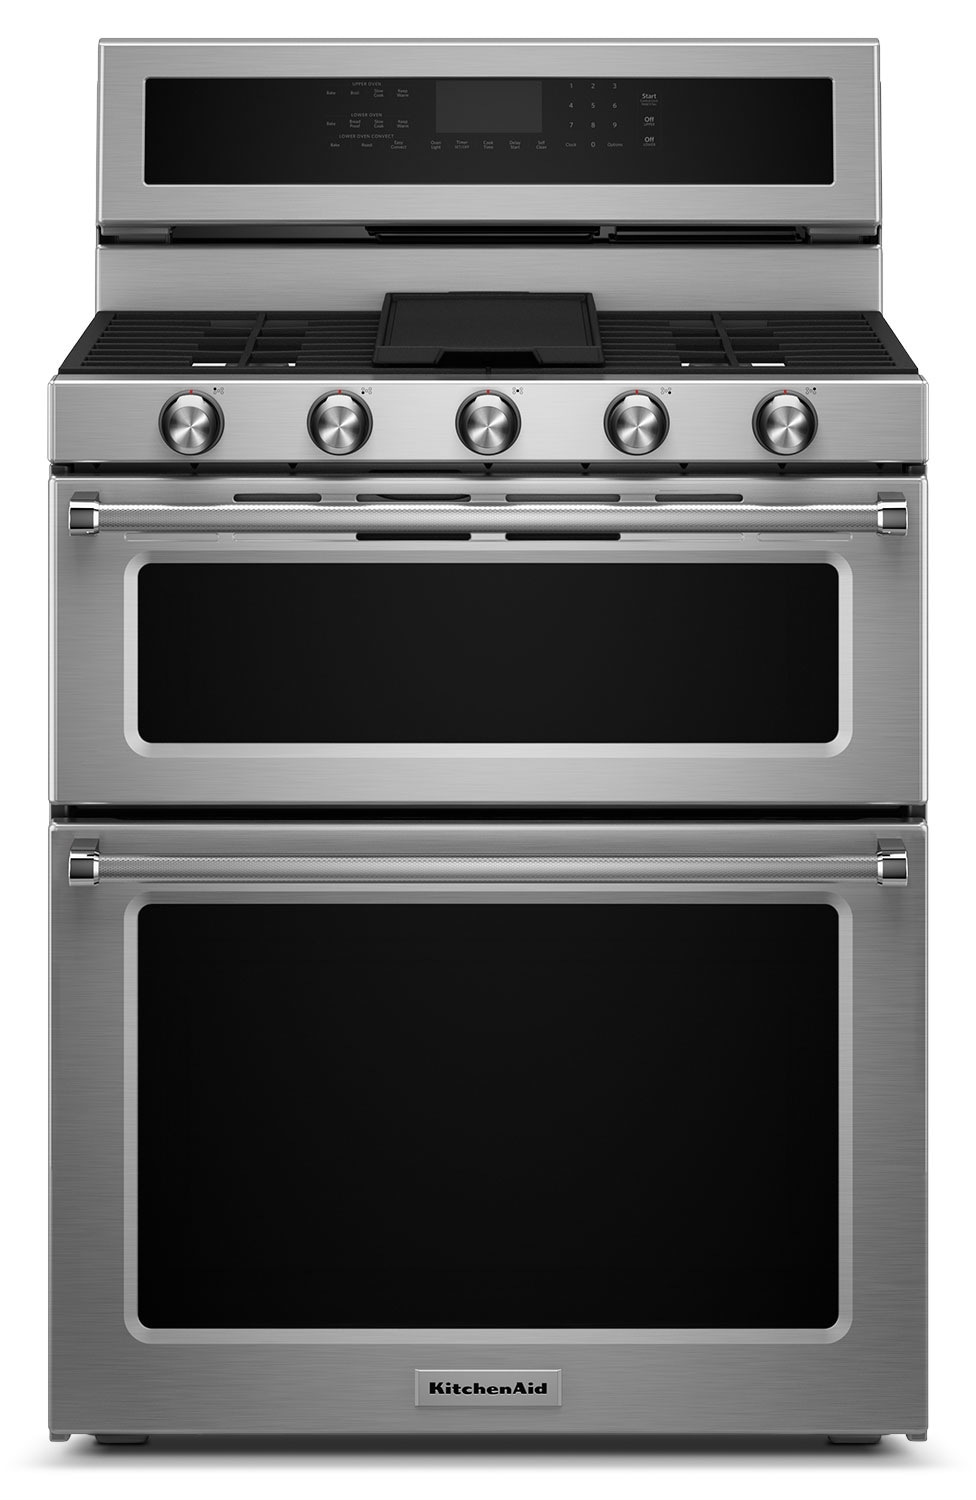 Kitchenaid 6 0 cu ft dual fuel double oven range stainless steel the brick - Kitchenaid inch dual fuel range ...